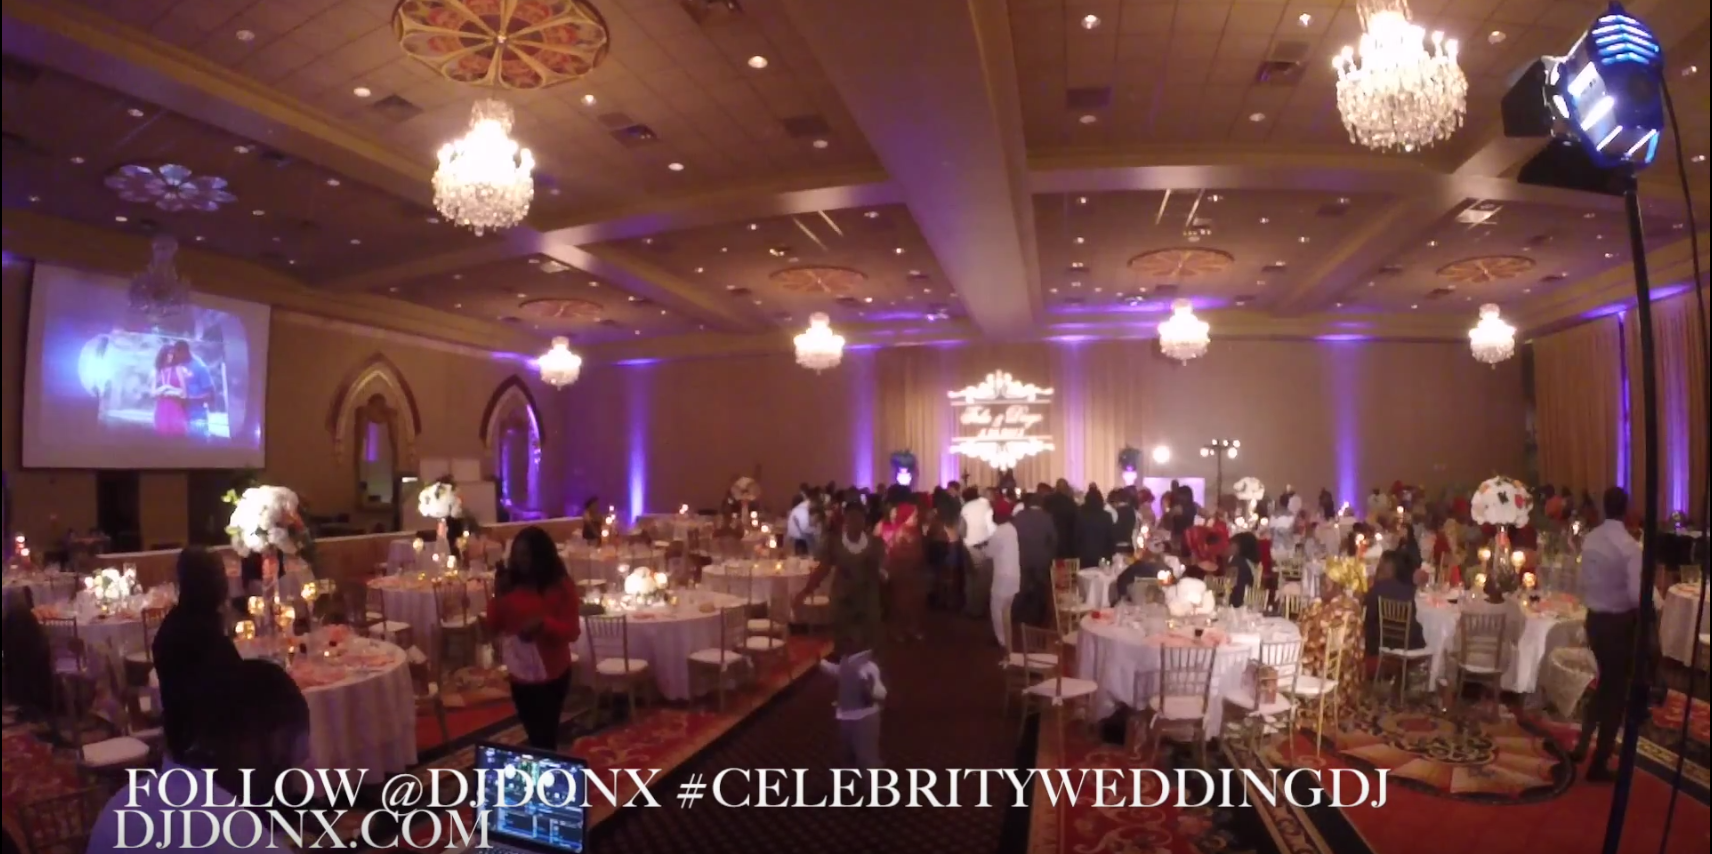 DJ Don X at an upscale wedding in DC